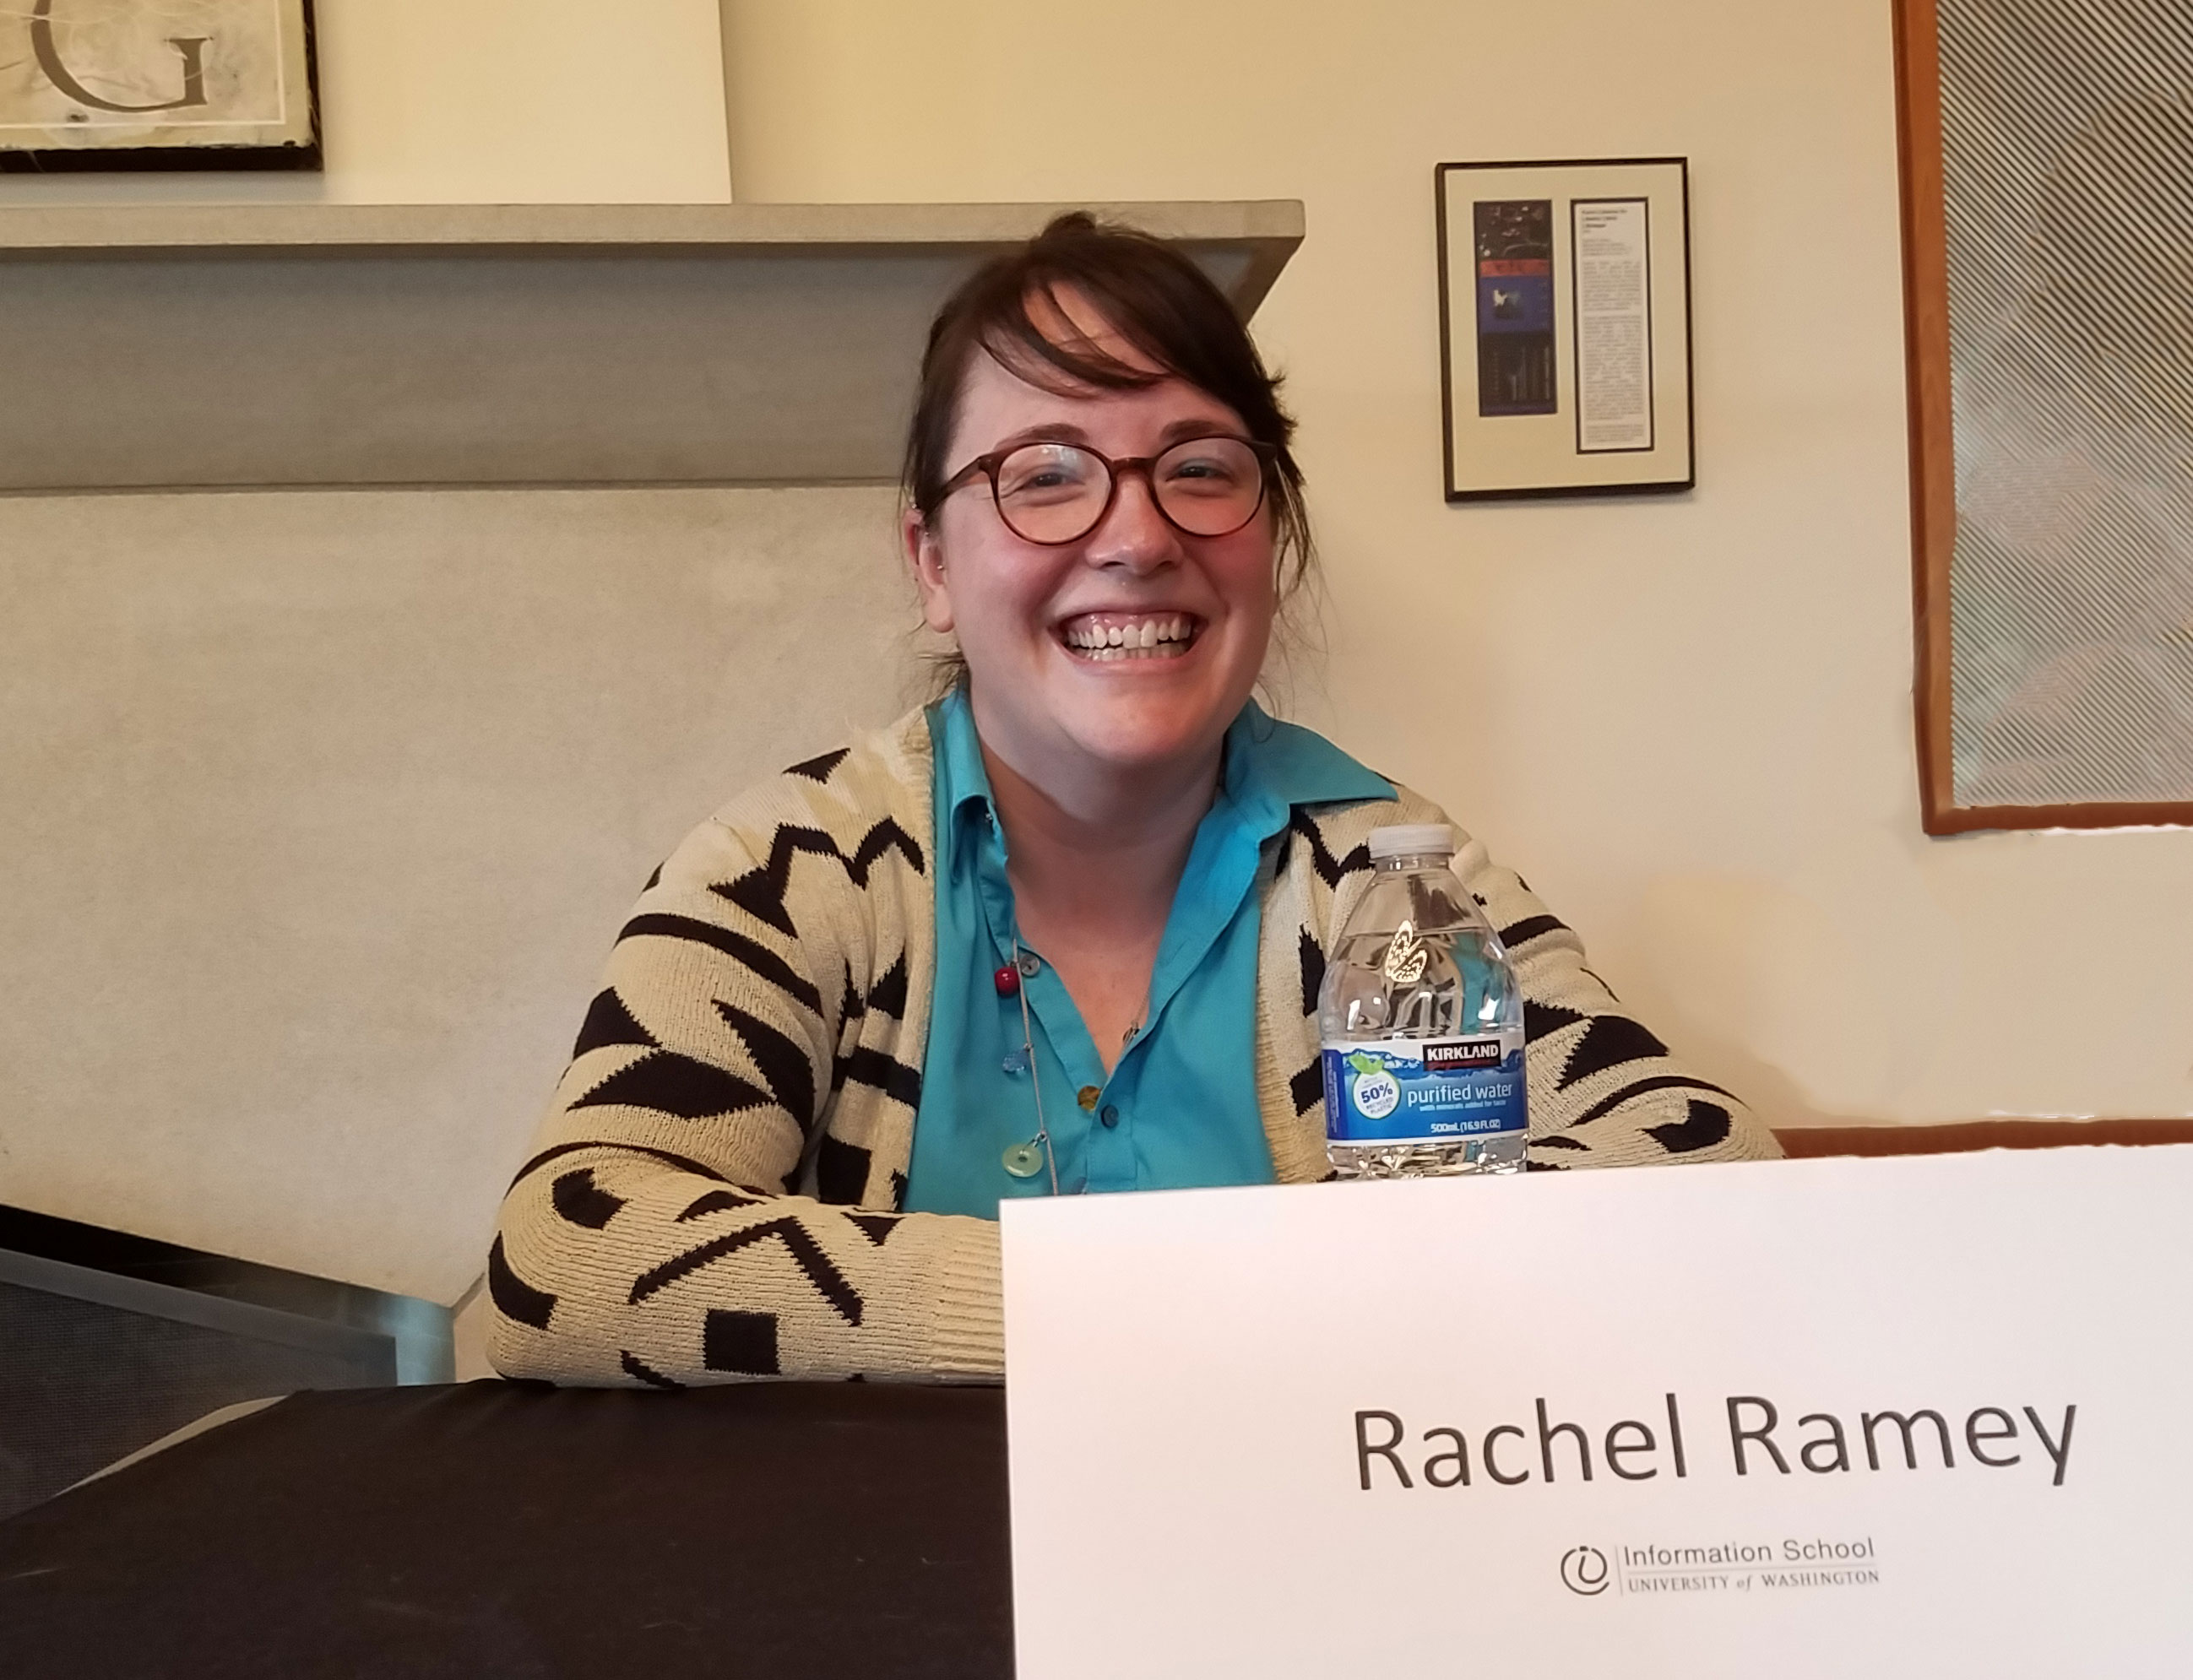 Smiling, young woman wearing glasses seated at a table with a name tag that reads Rachel Ramey.